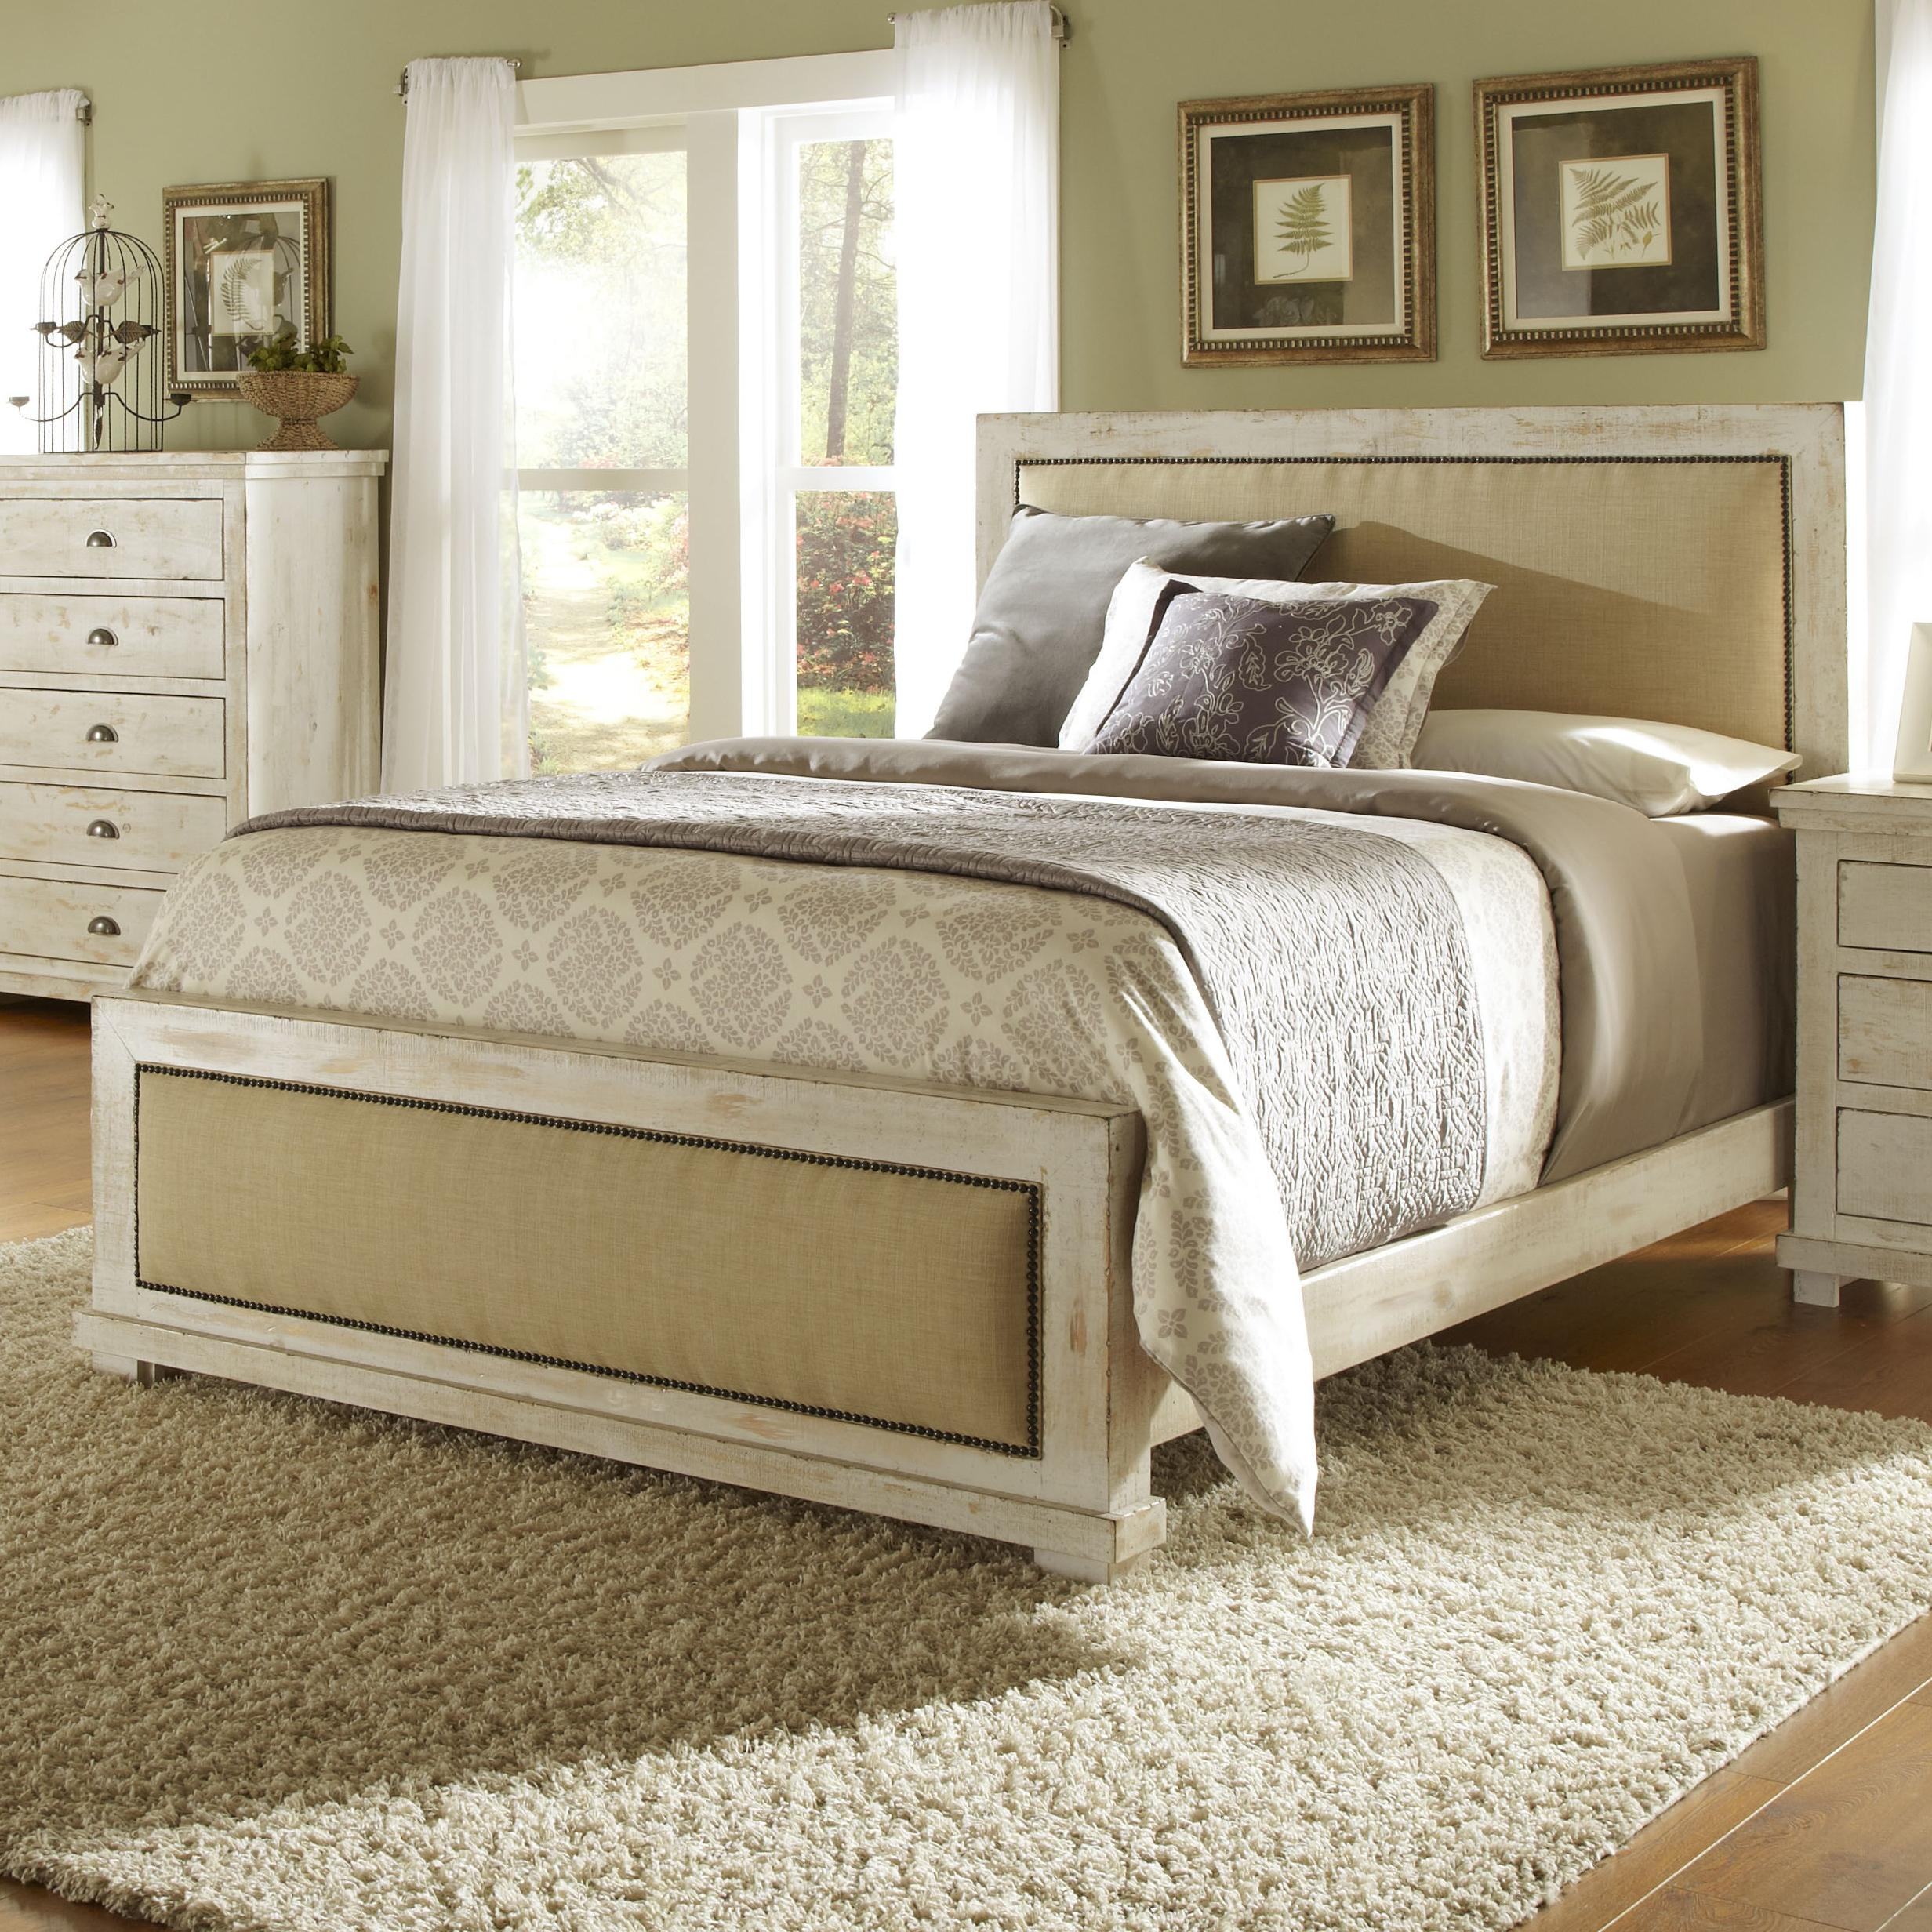 Progressive Furniture Willow Queen Upholstered Bed with Distressed ...